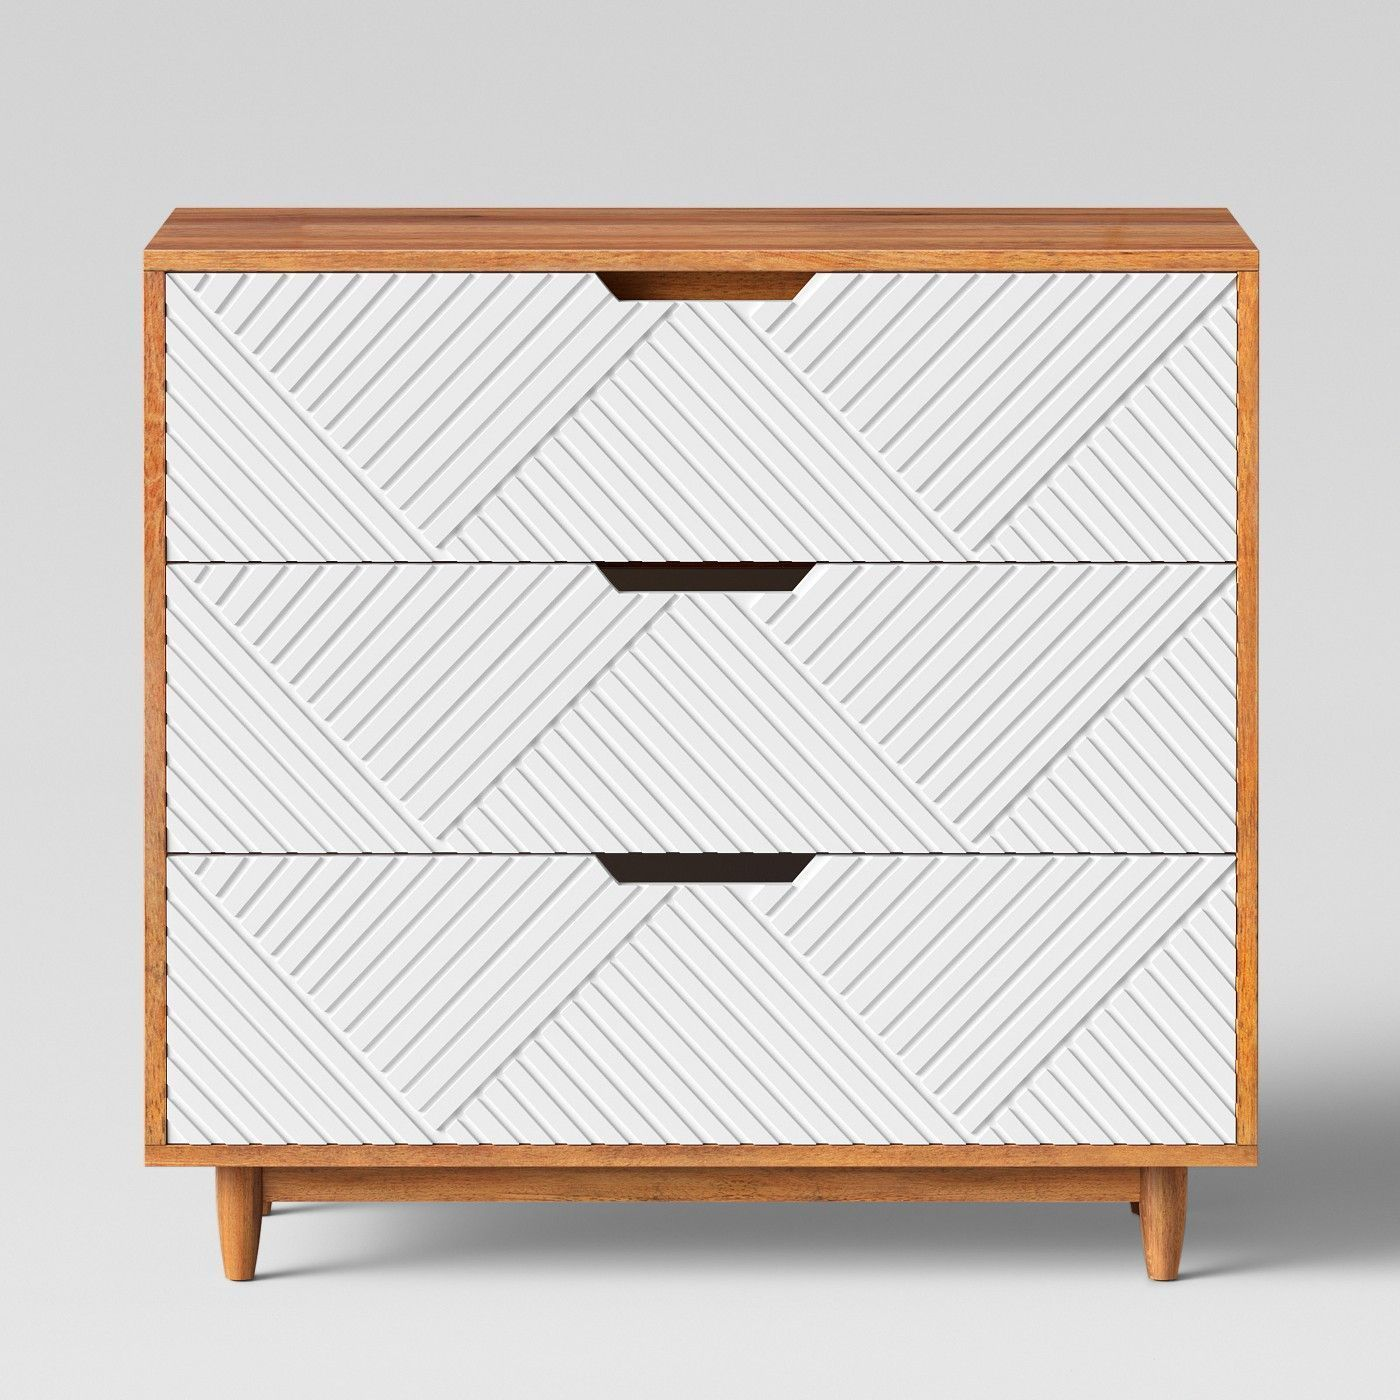 baby birthdays and the new opalhouse collection bedroom tachuri geometric front accent table brown touraco dresser white target home carved wood scandinavian mid century modern